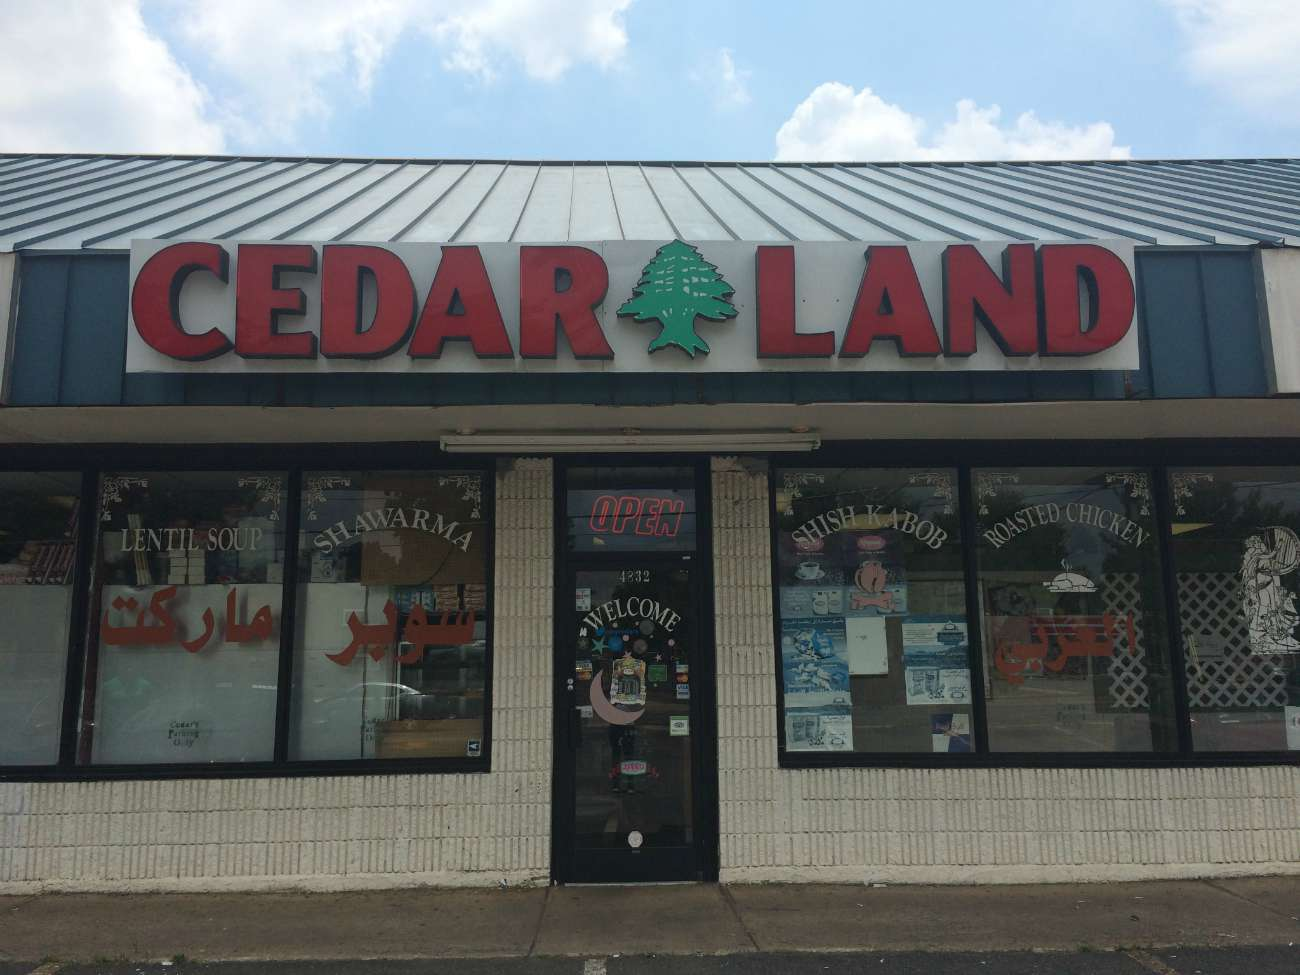 For the love of eating in grocery stores, go to Cedar Land immediately